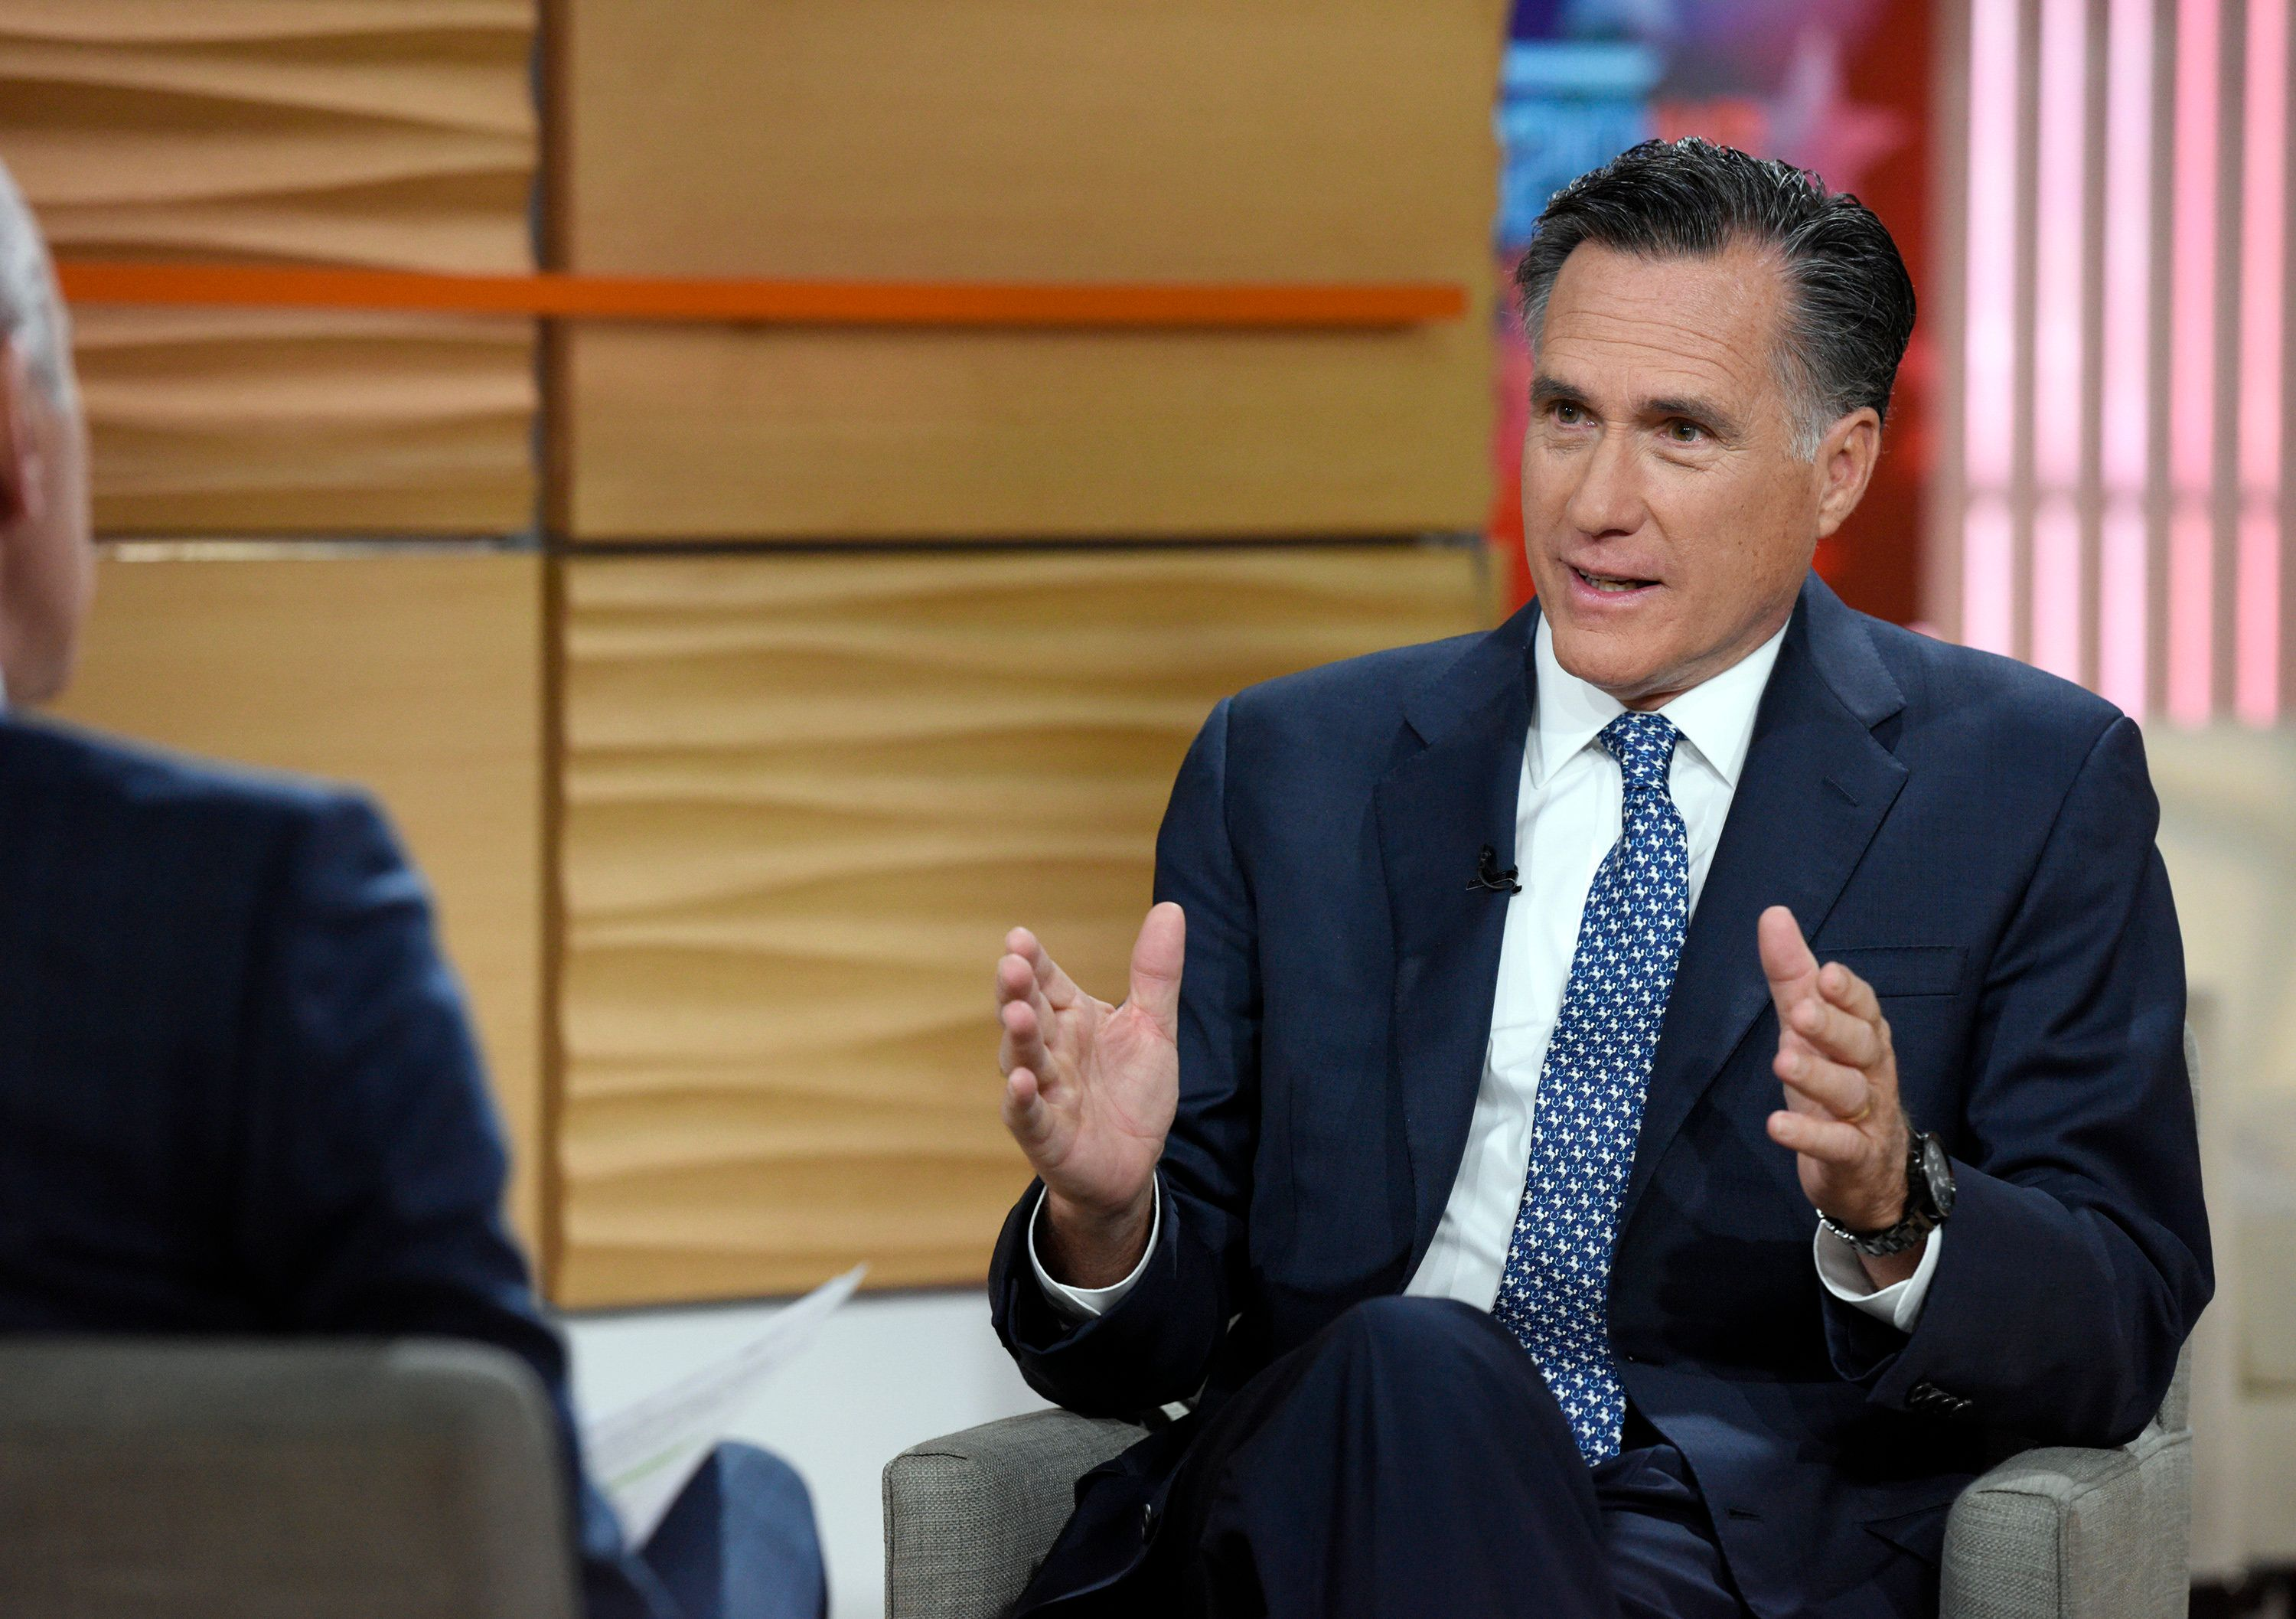 Mitt Romney doesn't want to be associated with Donald Trump's racist campaign.